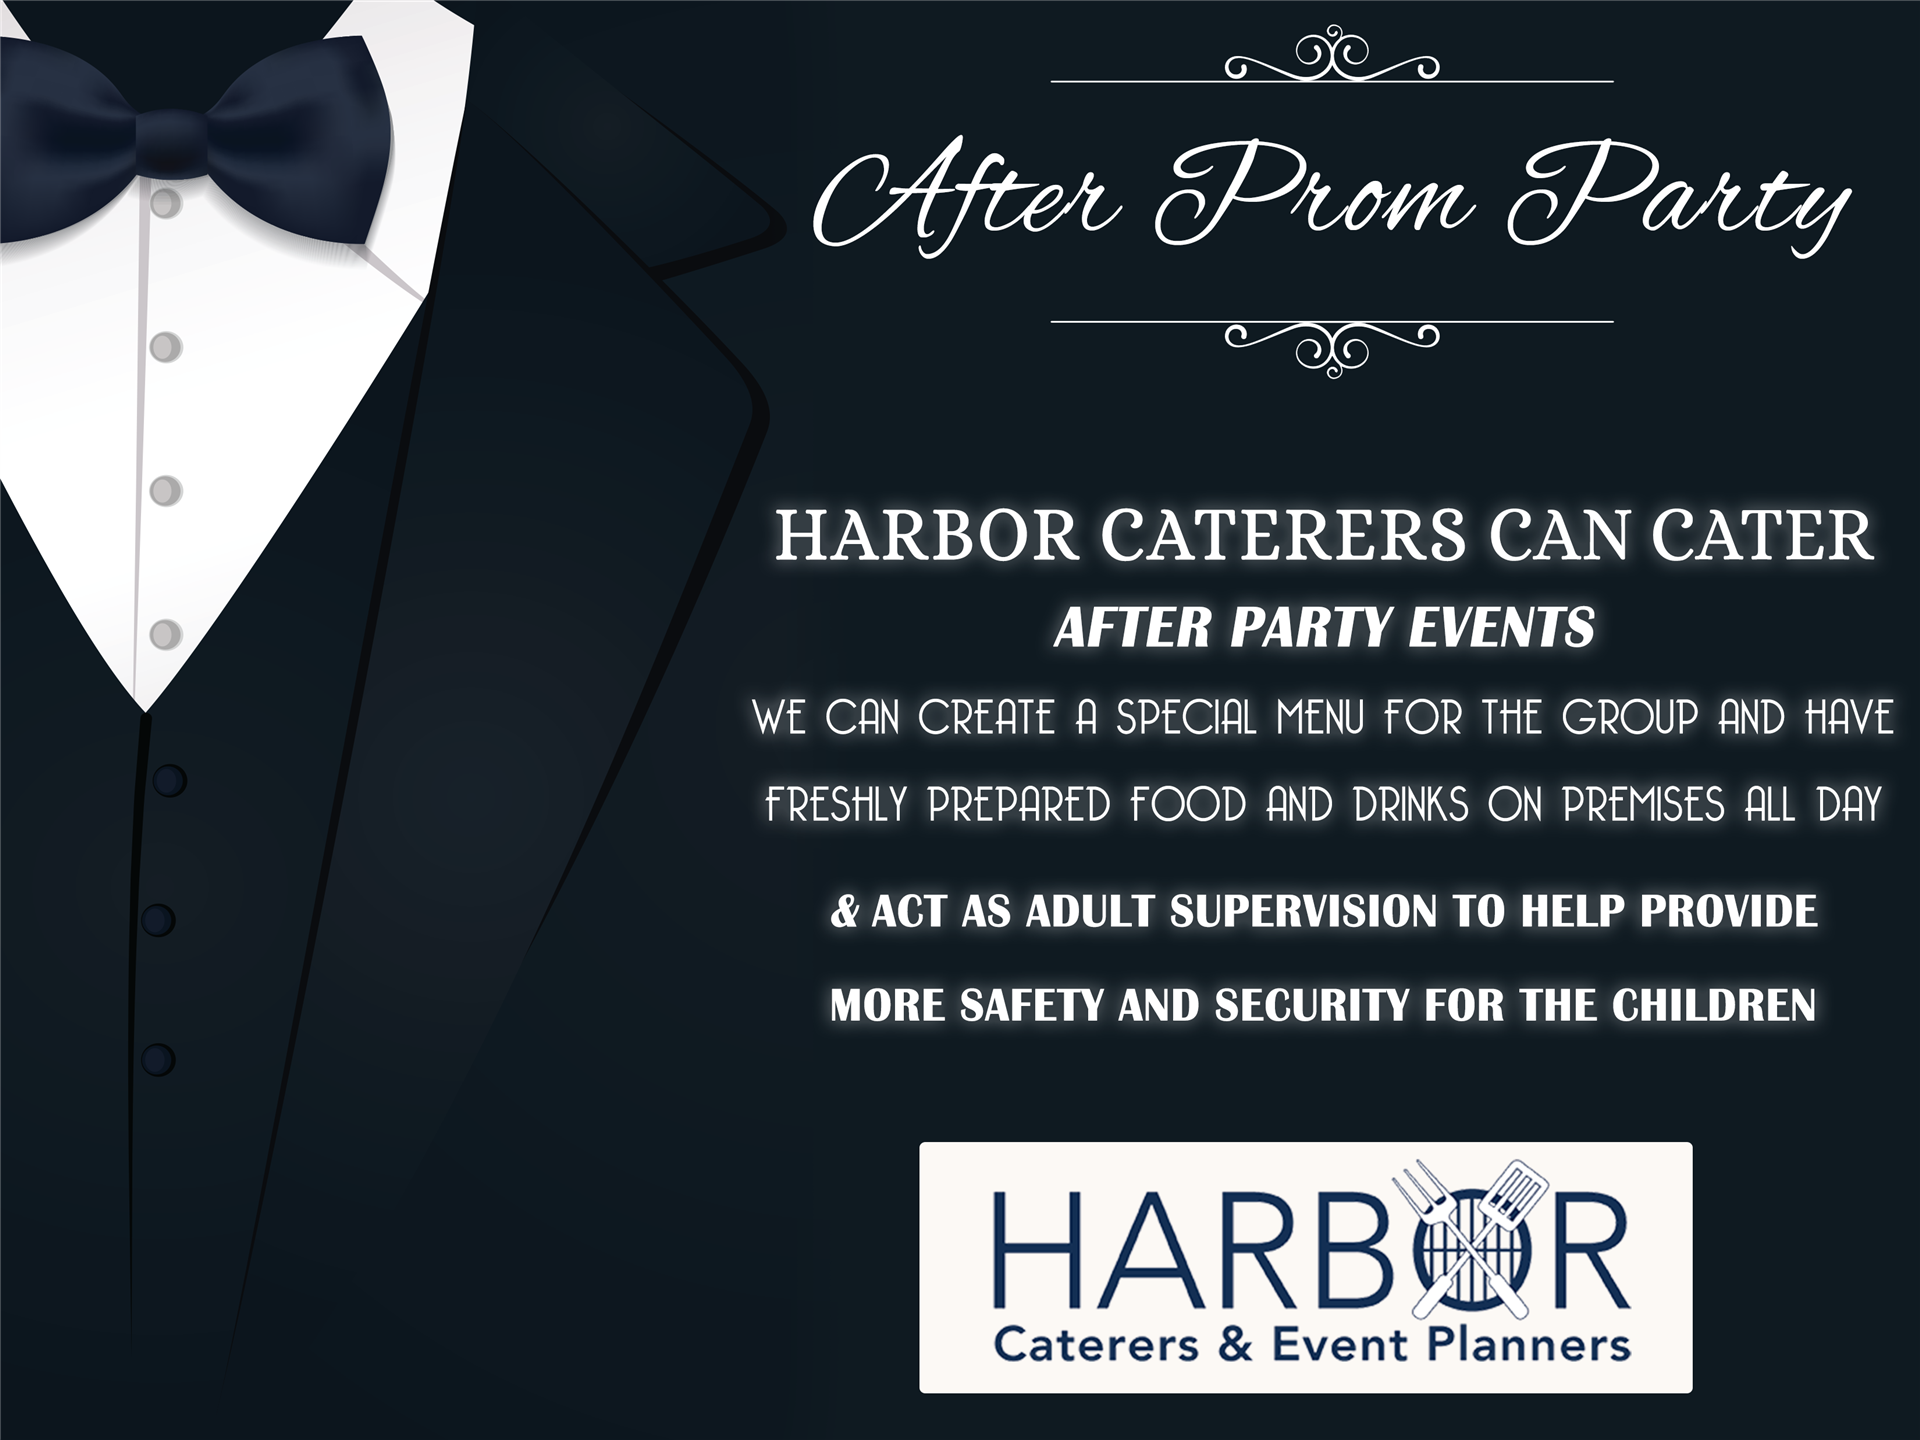 After Prom Party | Harbor Caterers can cater after-party events!  We can create a special menu for the group and have freshly prepared food and drinks on premises all day. & act as adult supervision to help provide more safety and security for the children.